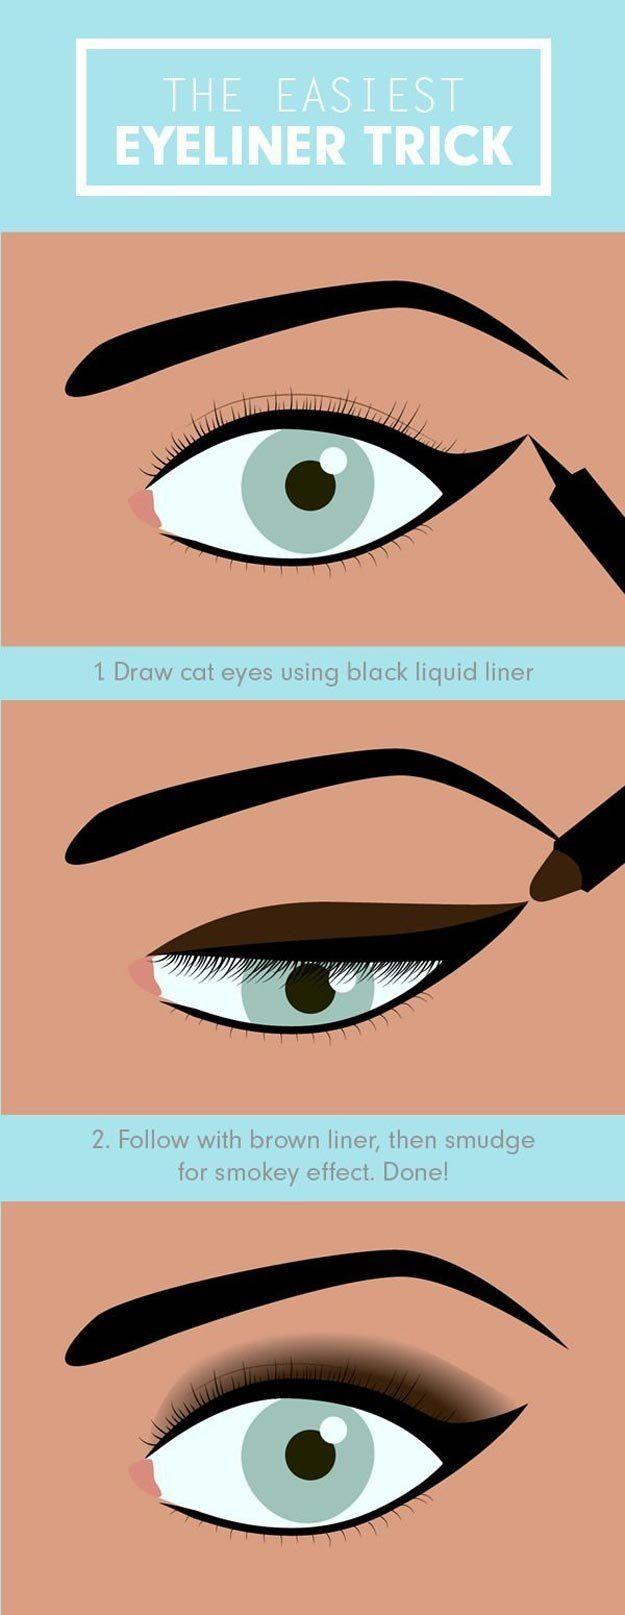 6. Easiest Eyeliner Trick | 17 Great Eyeliner Hack for Makeup Junkies | Makeup T...